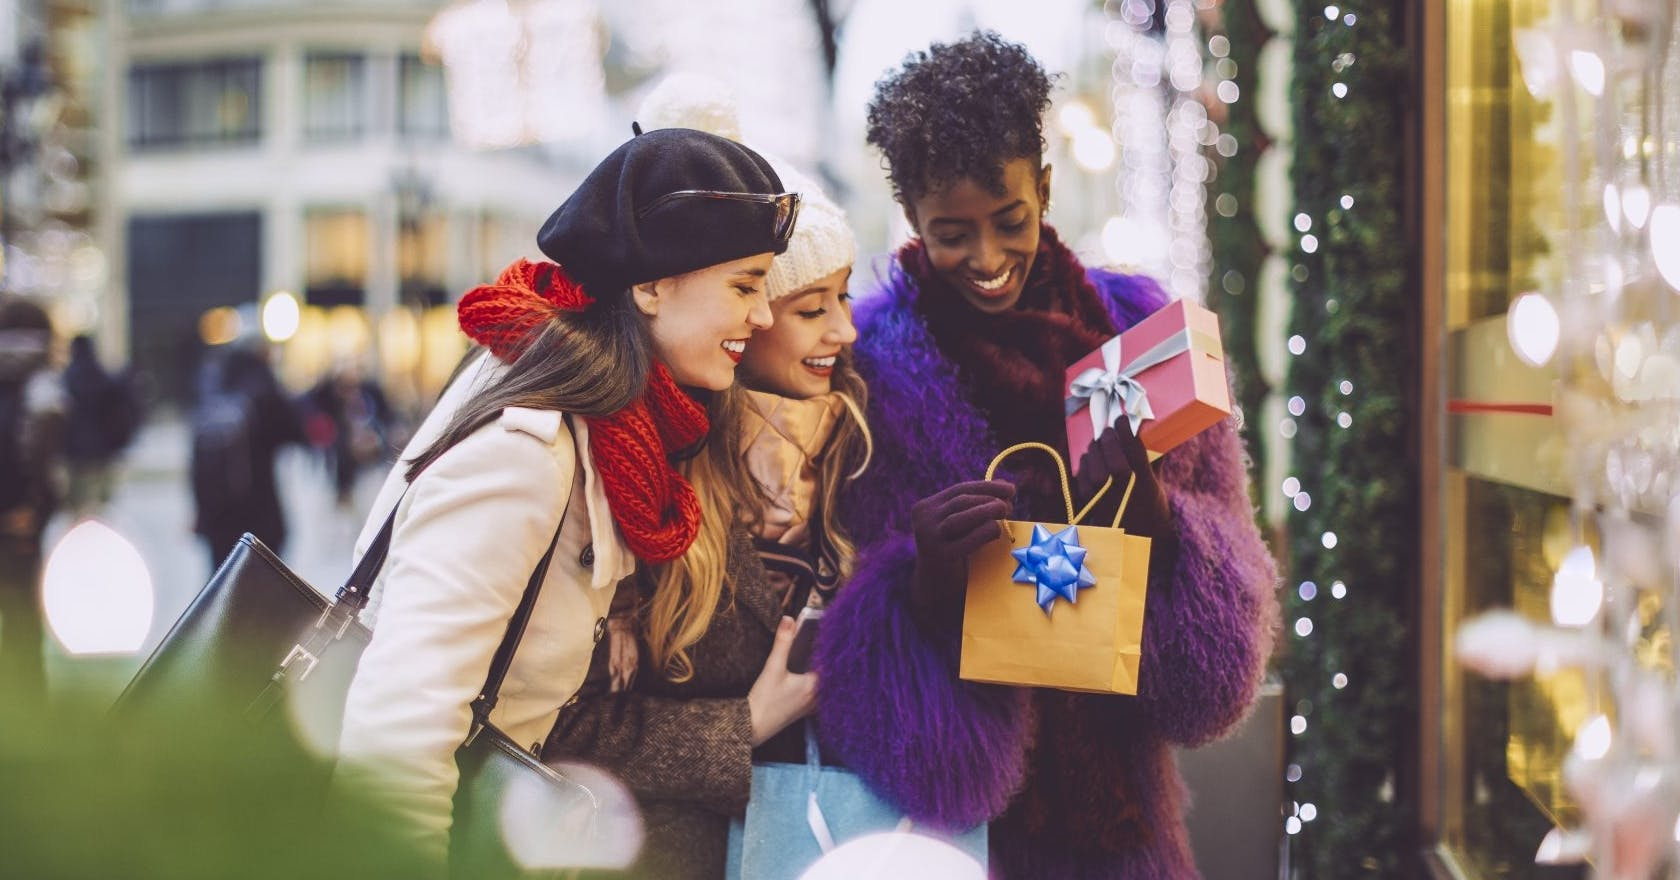 How shopping on the high street became a beloved Christmas ritual